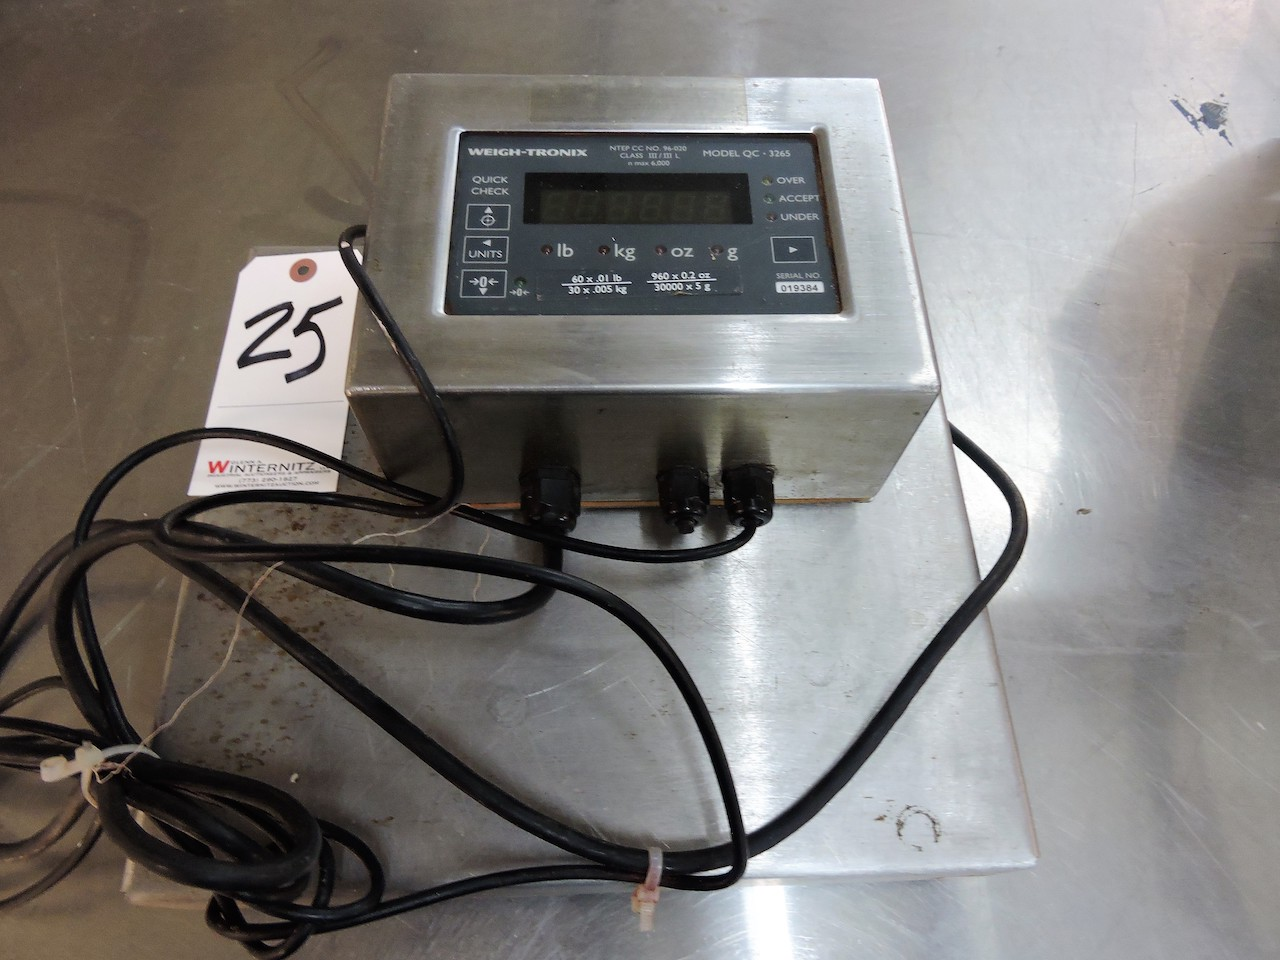 Lot 25 - WEIGHTRONIX SCALE MODEL QC 3265 CLASS III N MAX 6000,